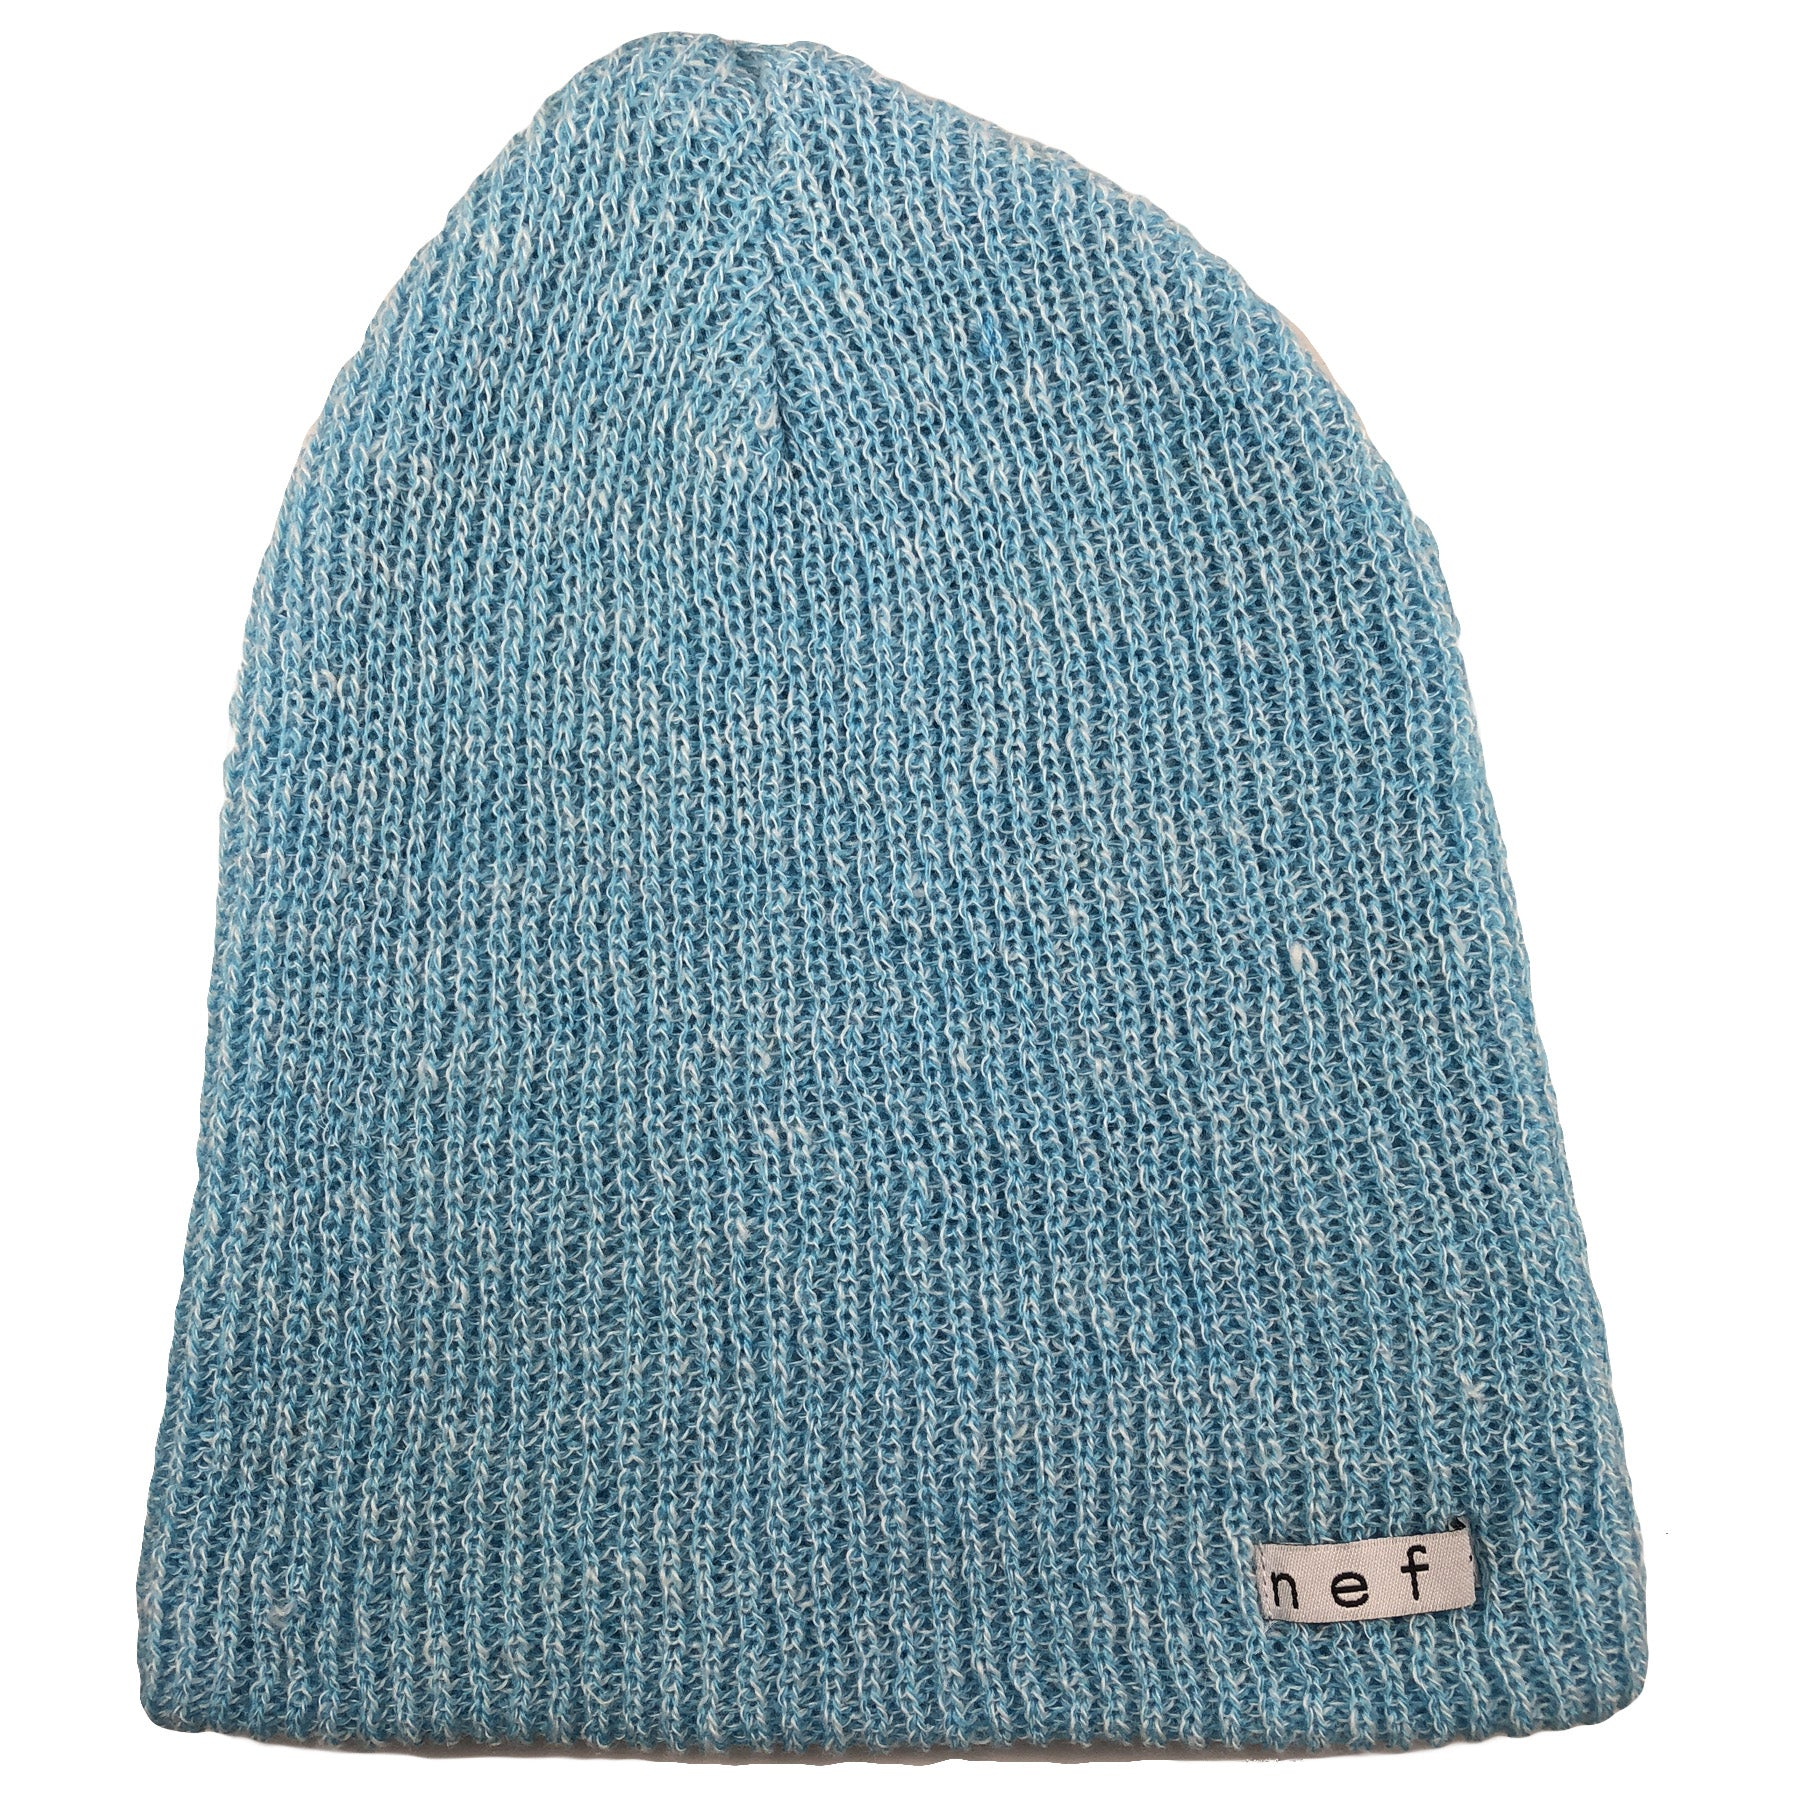 e6e82fb6815168 the heather blue neff knit beanie has a light blue color and a loose-knit